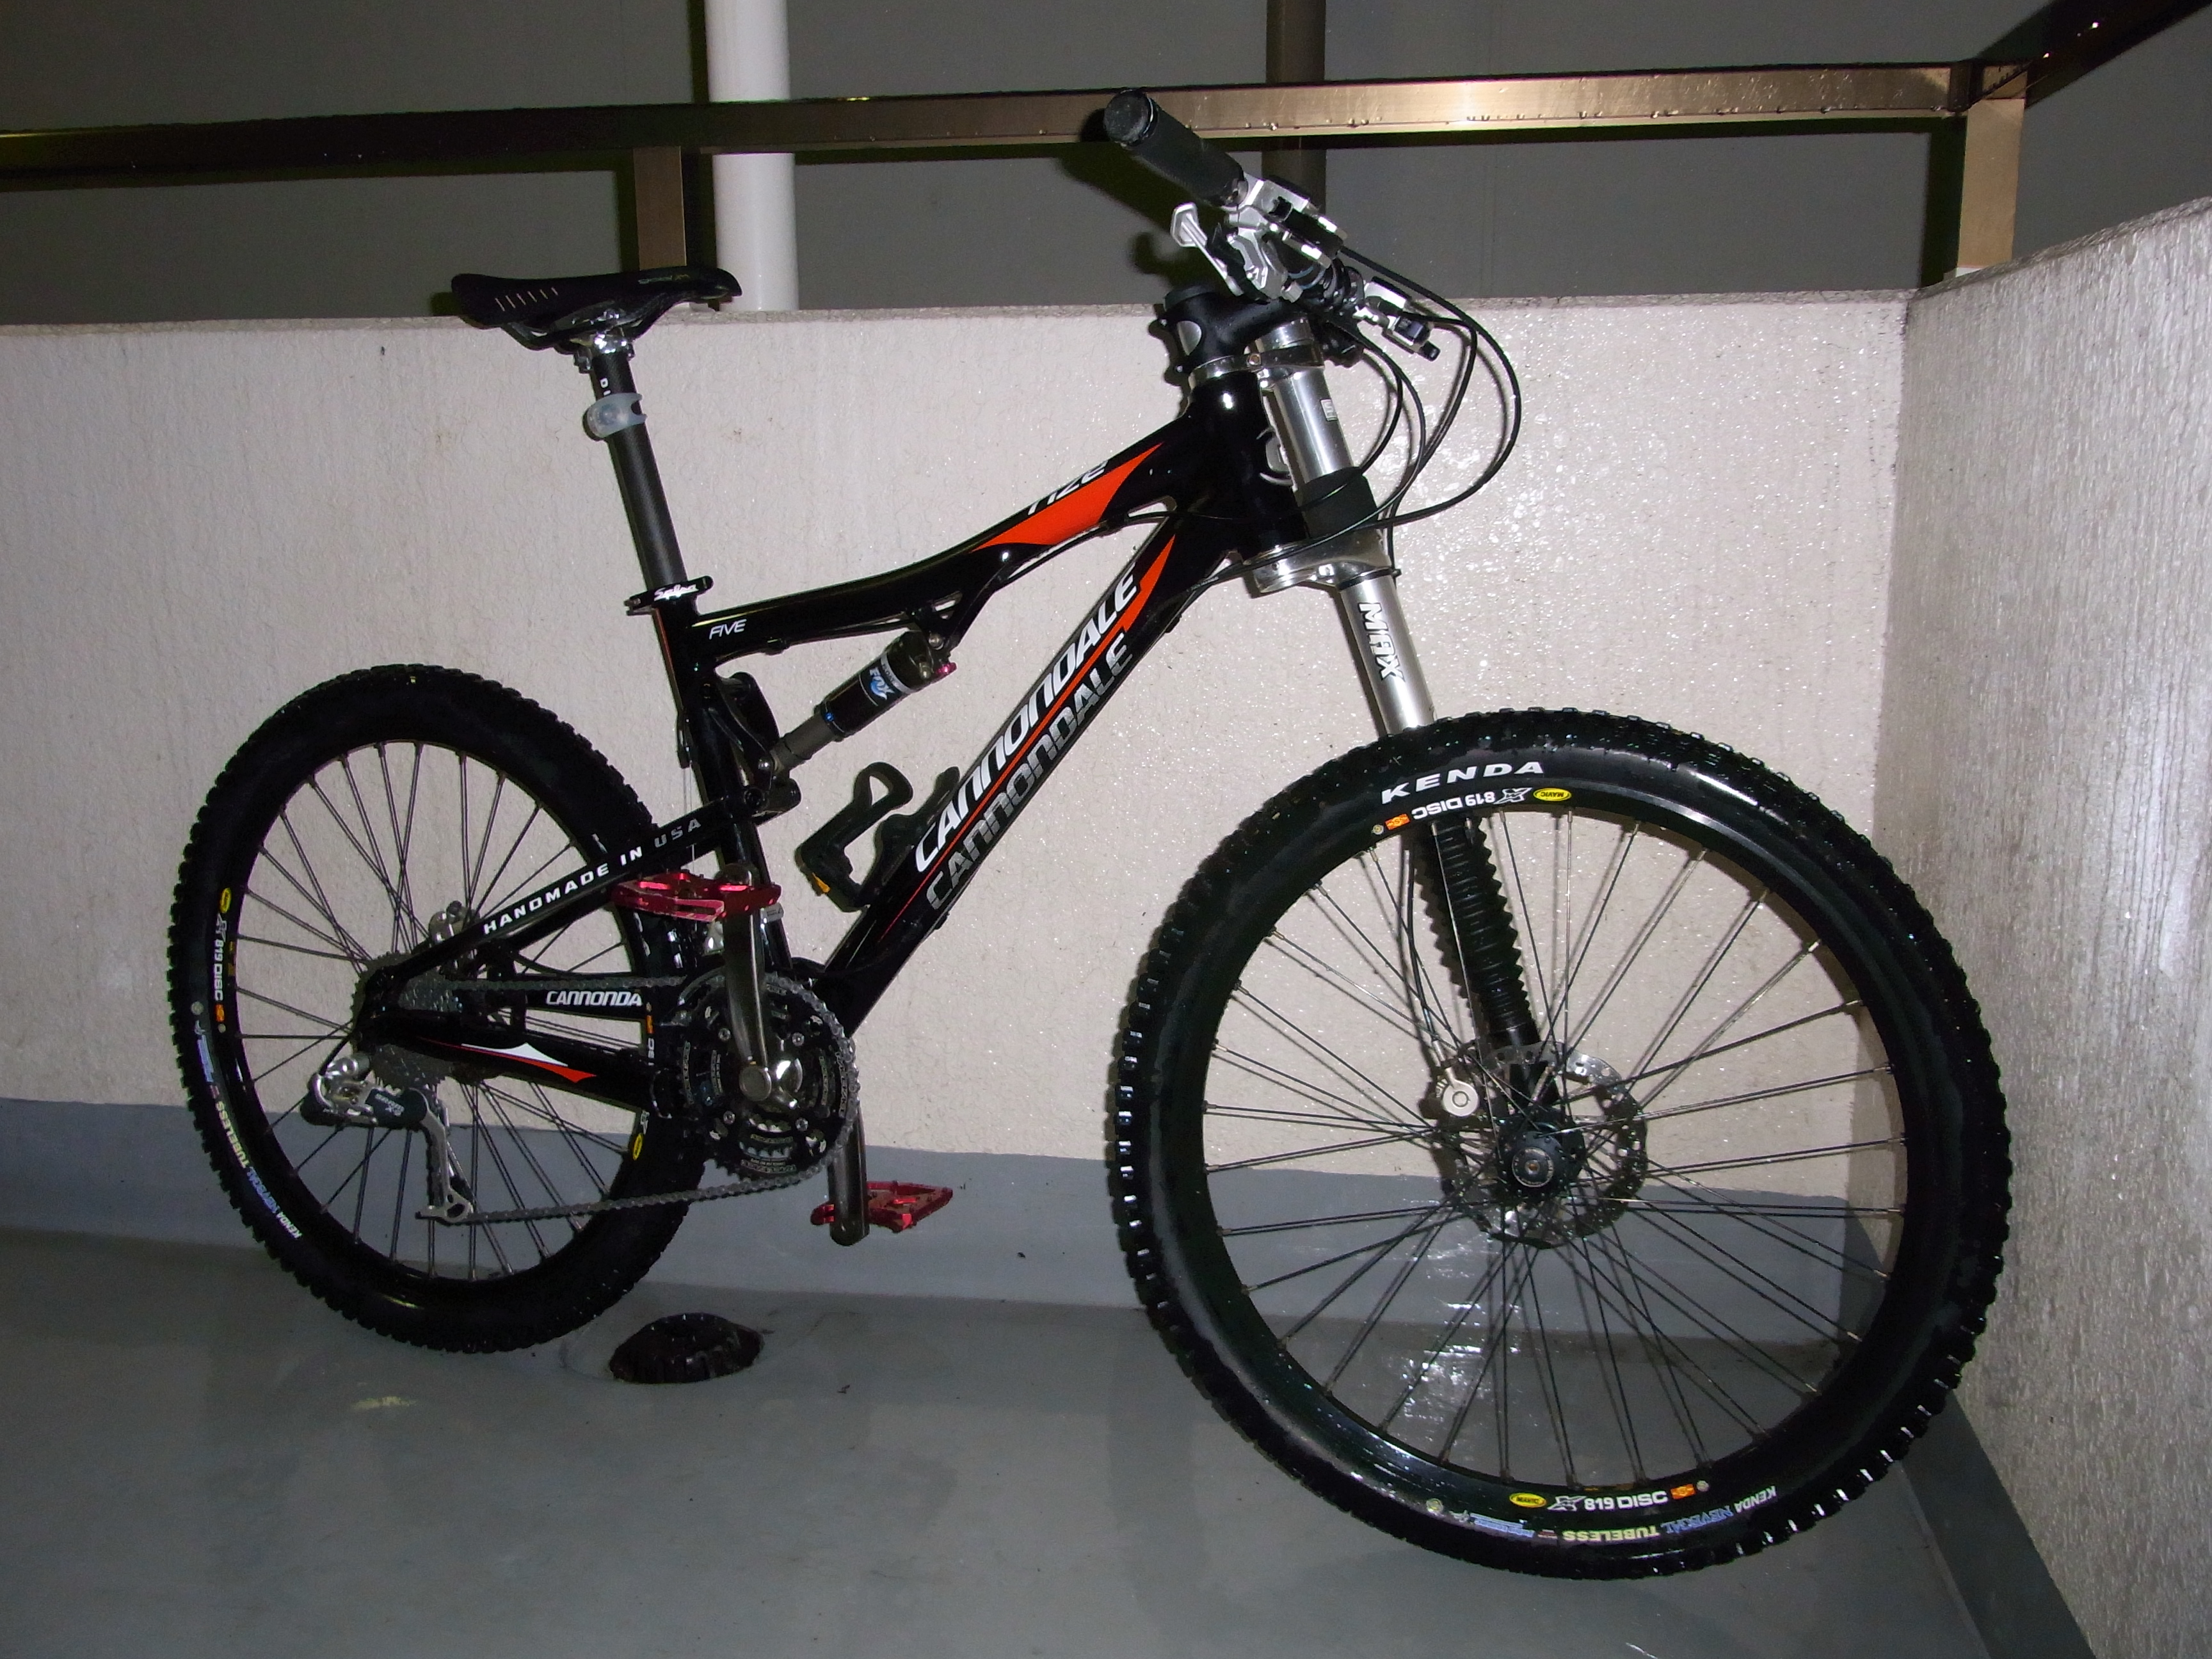 Cannondale Rize 5 2009 + Prophet 2005 Parts